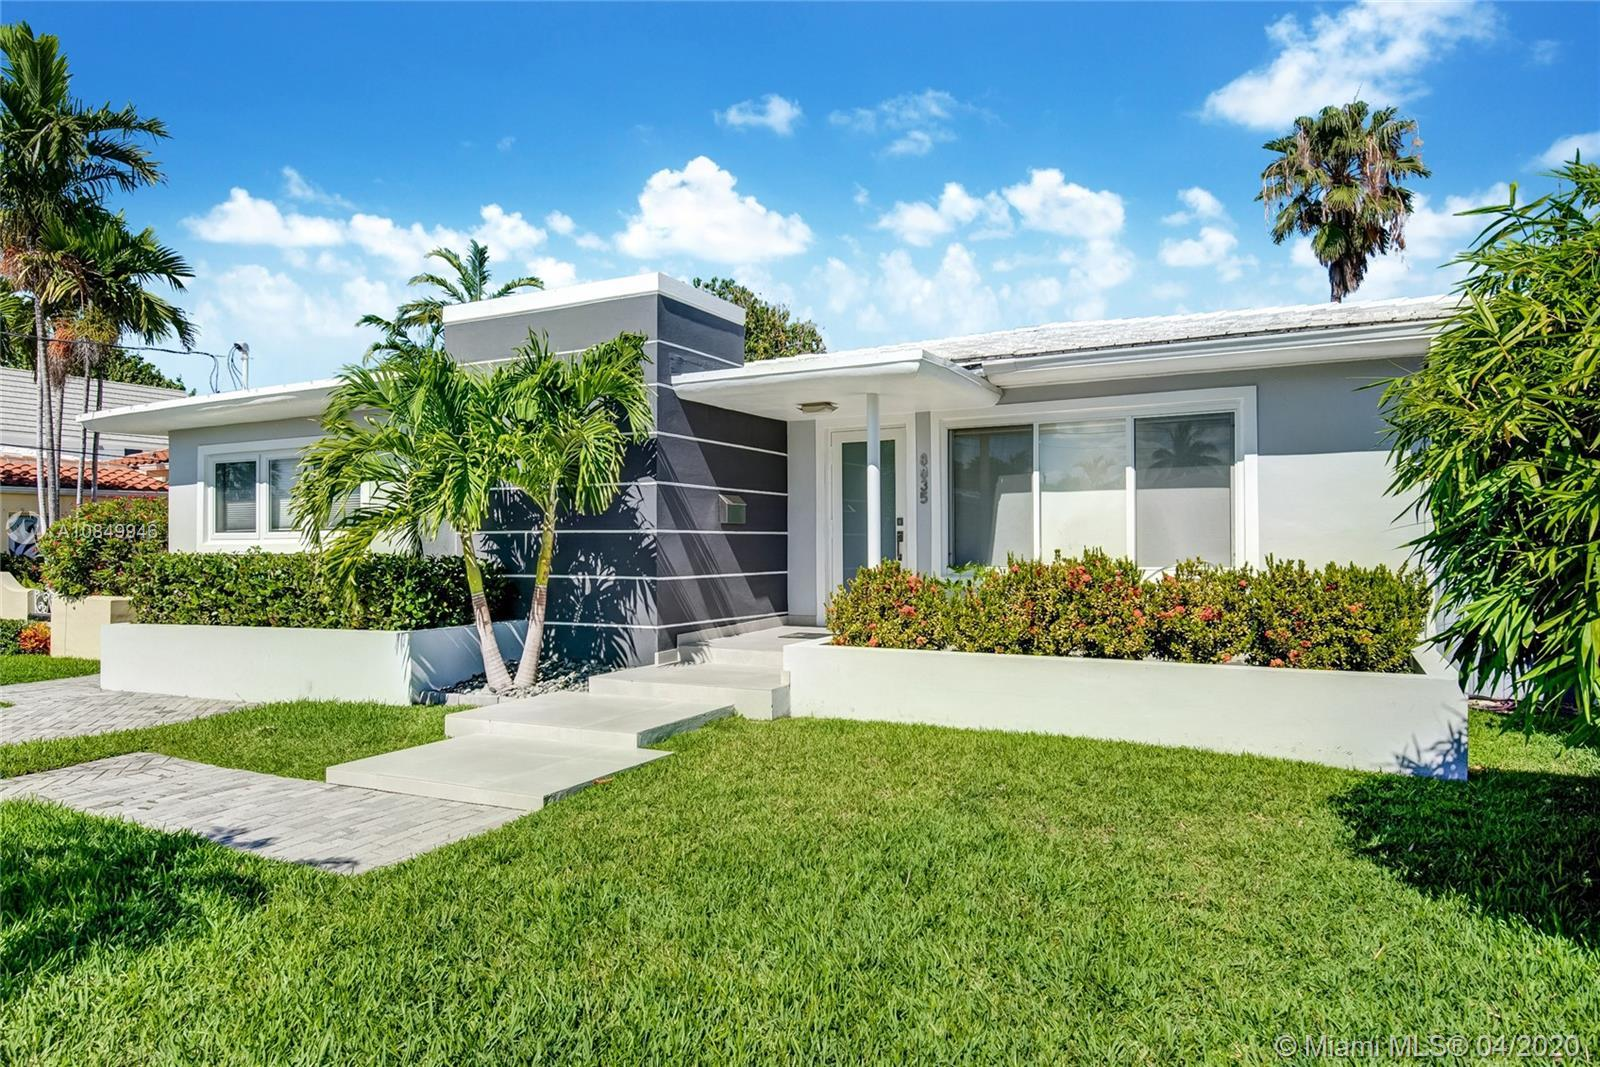 Stylish and modern renovated house in Surfside! The house has an open floor plan with lots of natura